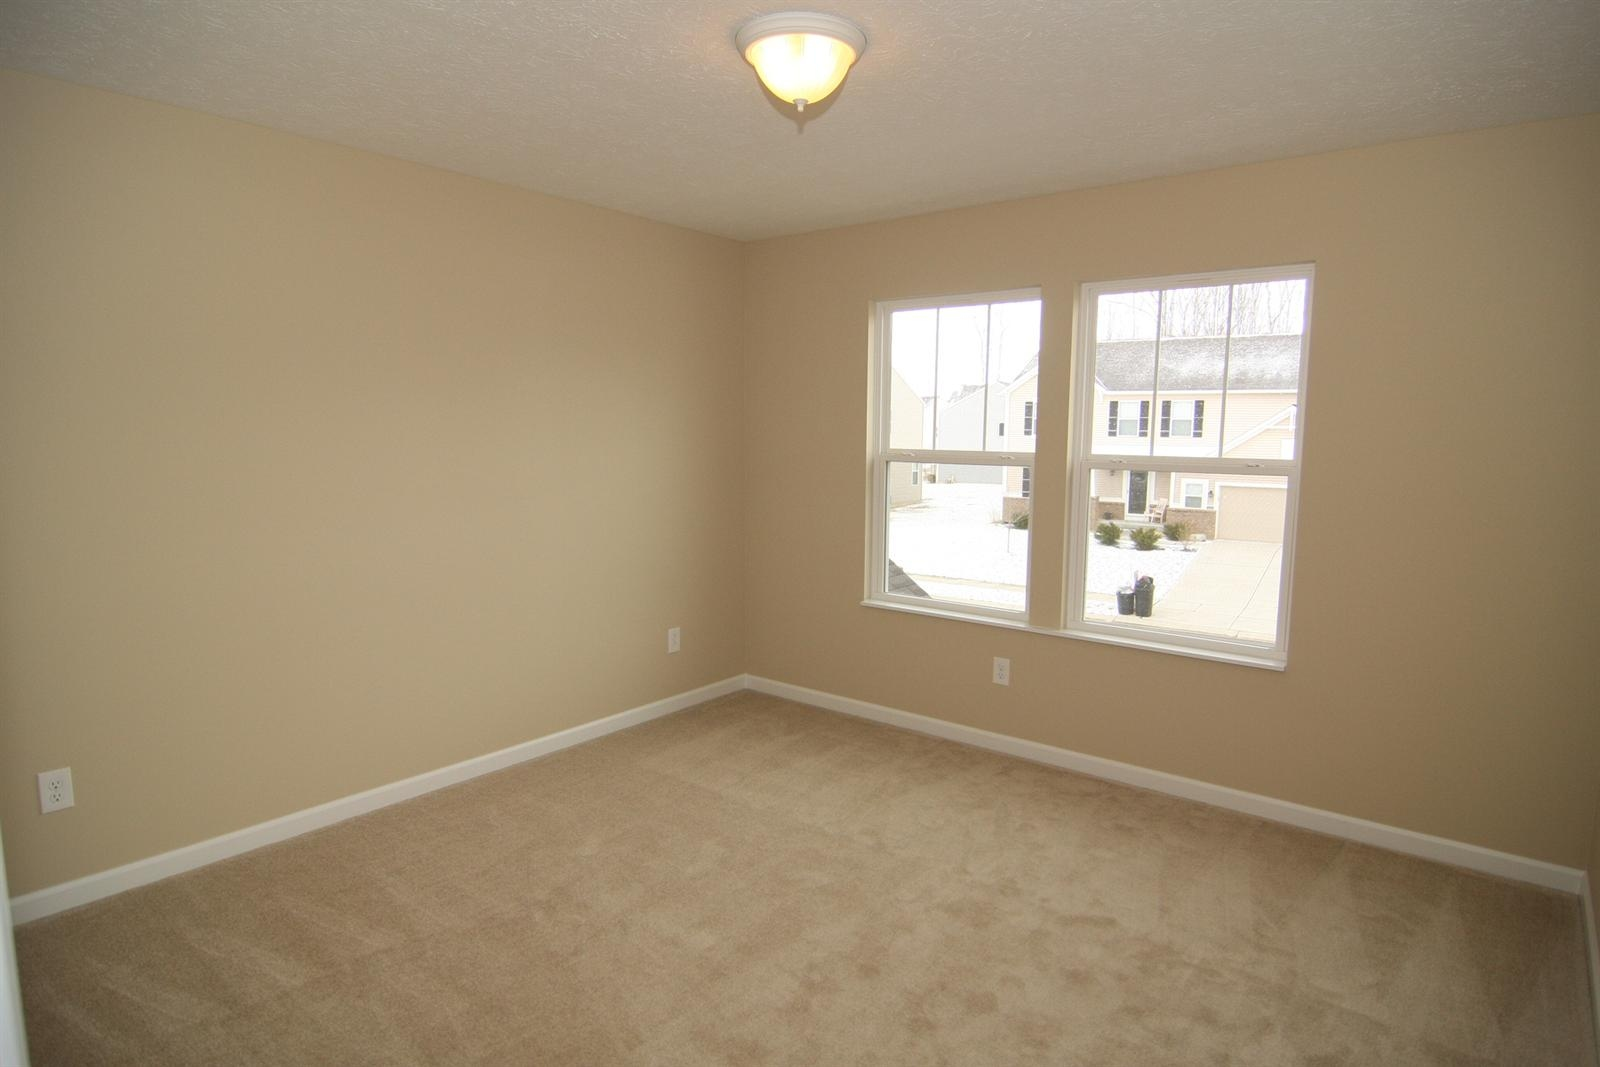 Real Estate Photography - 4852 Corydon Ln, Indianapolis, IN, 46239 - Location 13